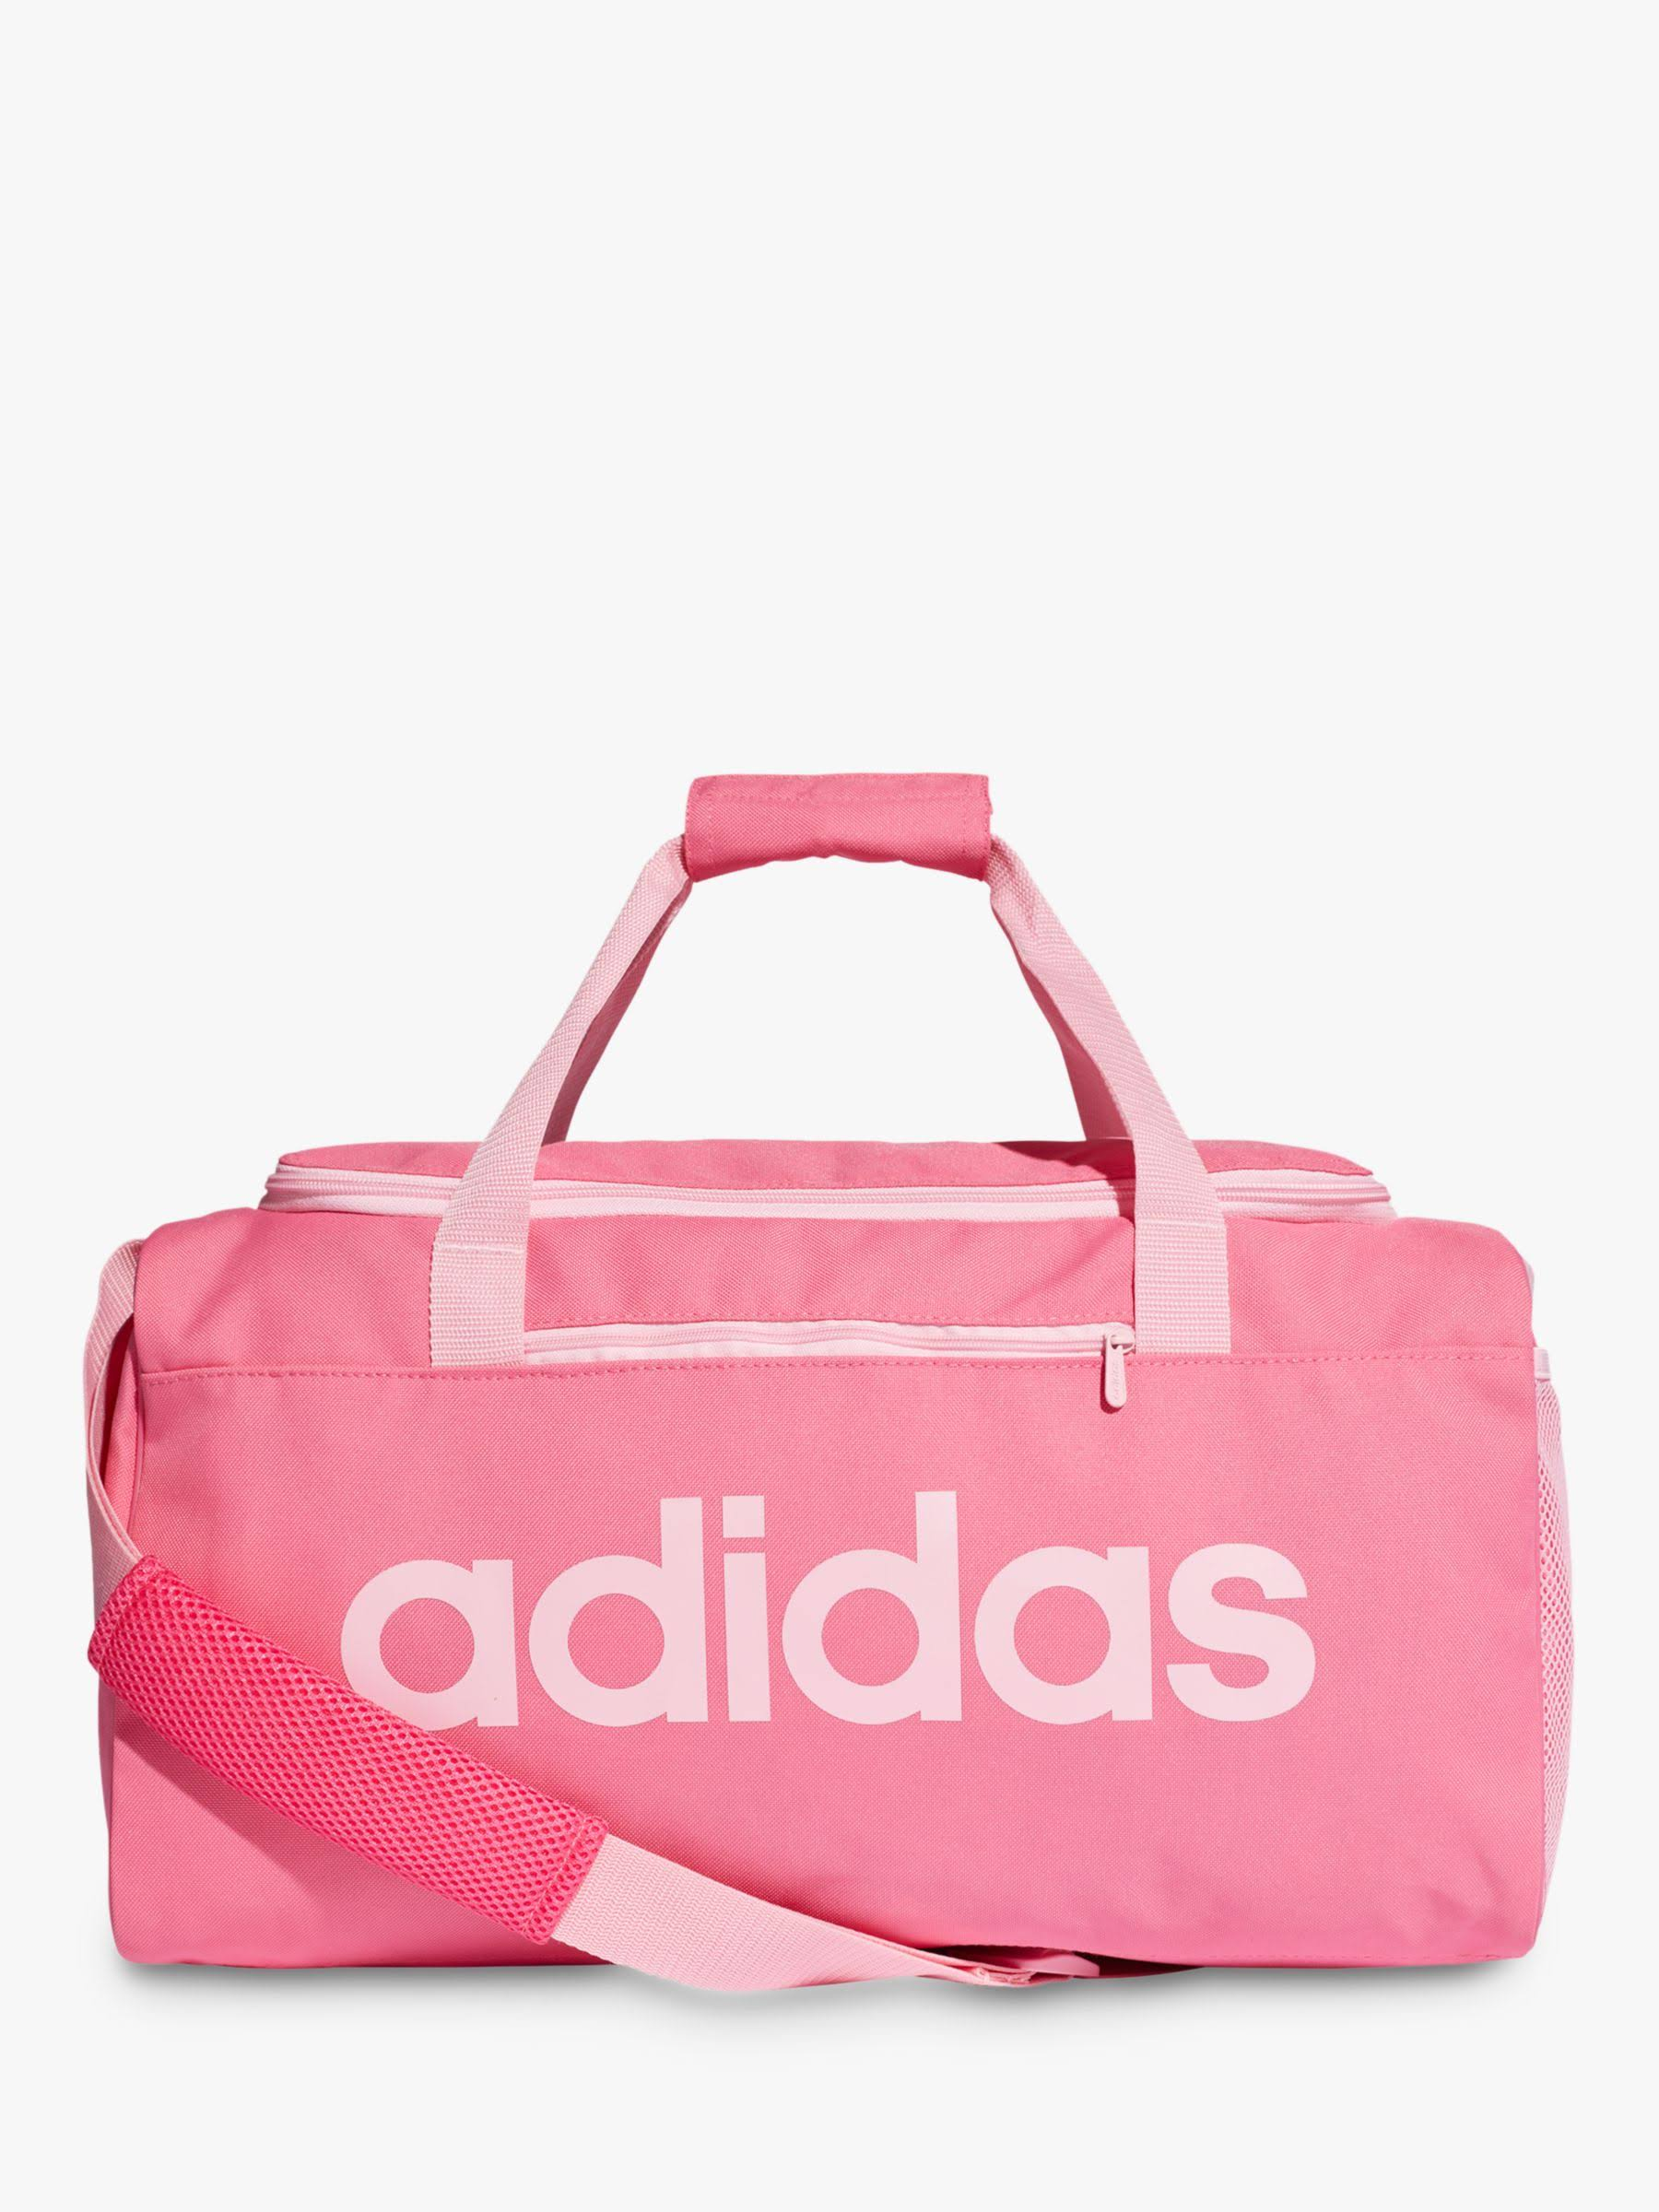 Adidas Pink Linear Core Duffel Bag Small - Pink